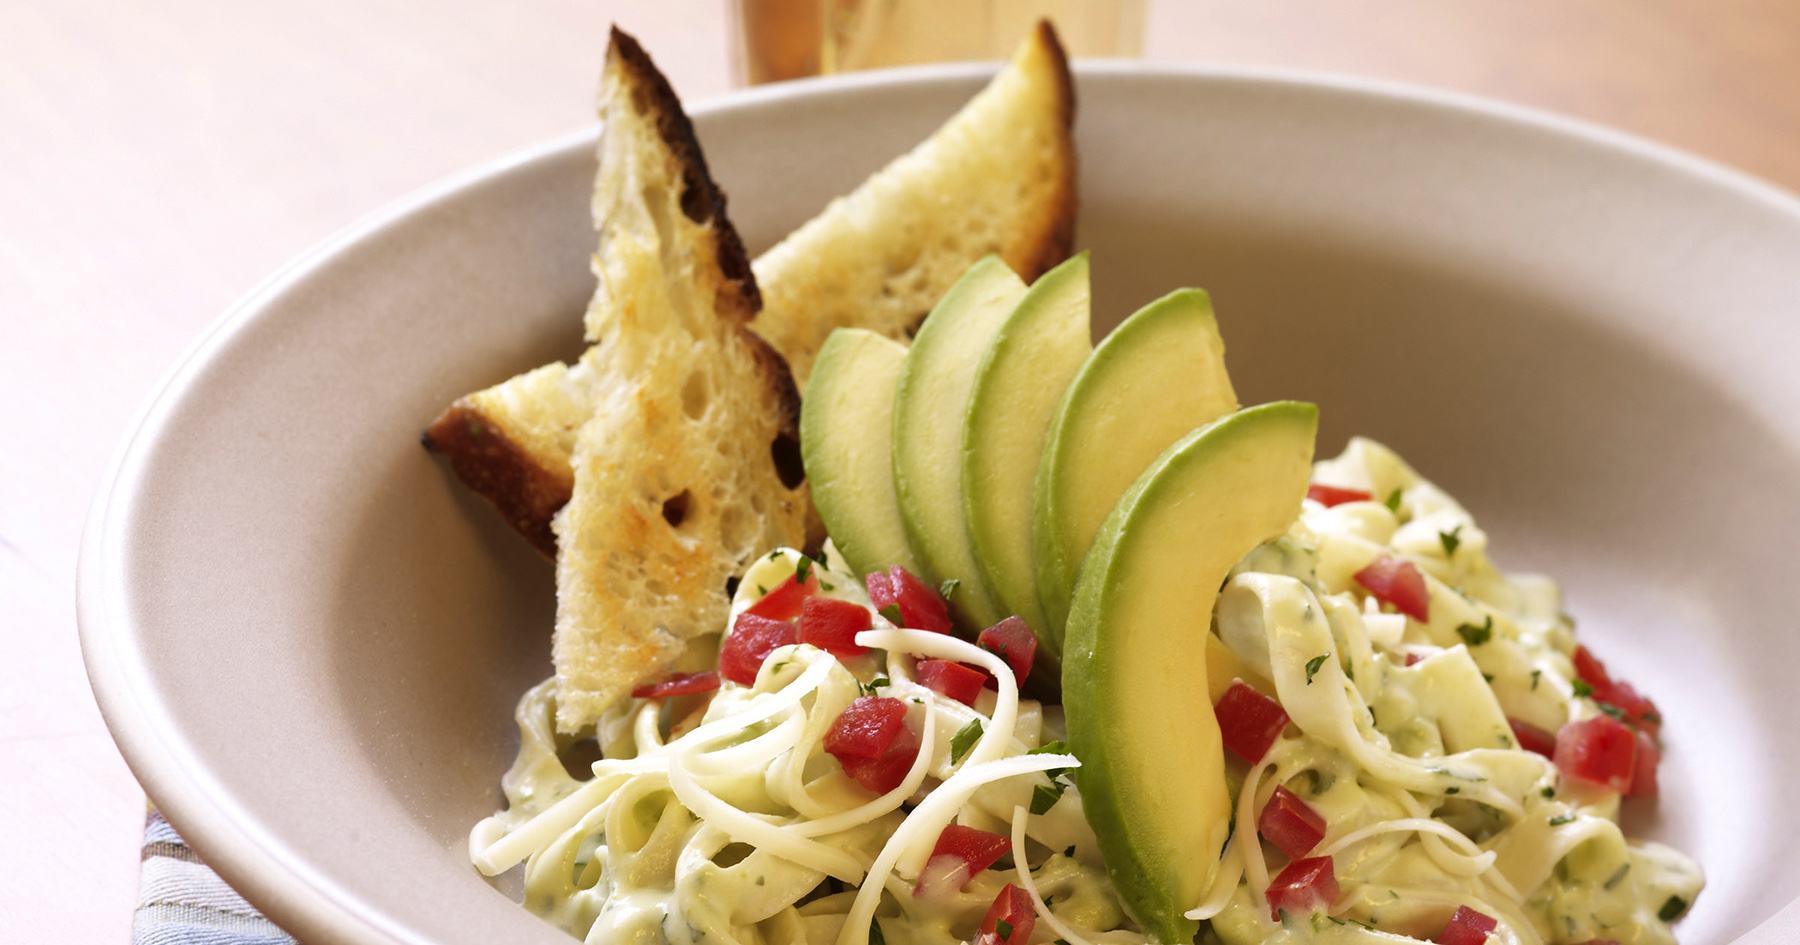 California-style Pasta with Avocado